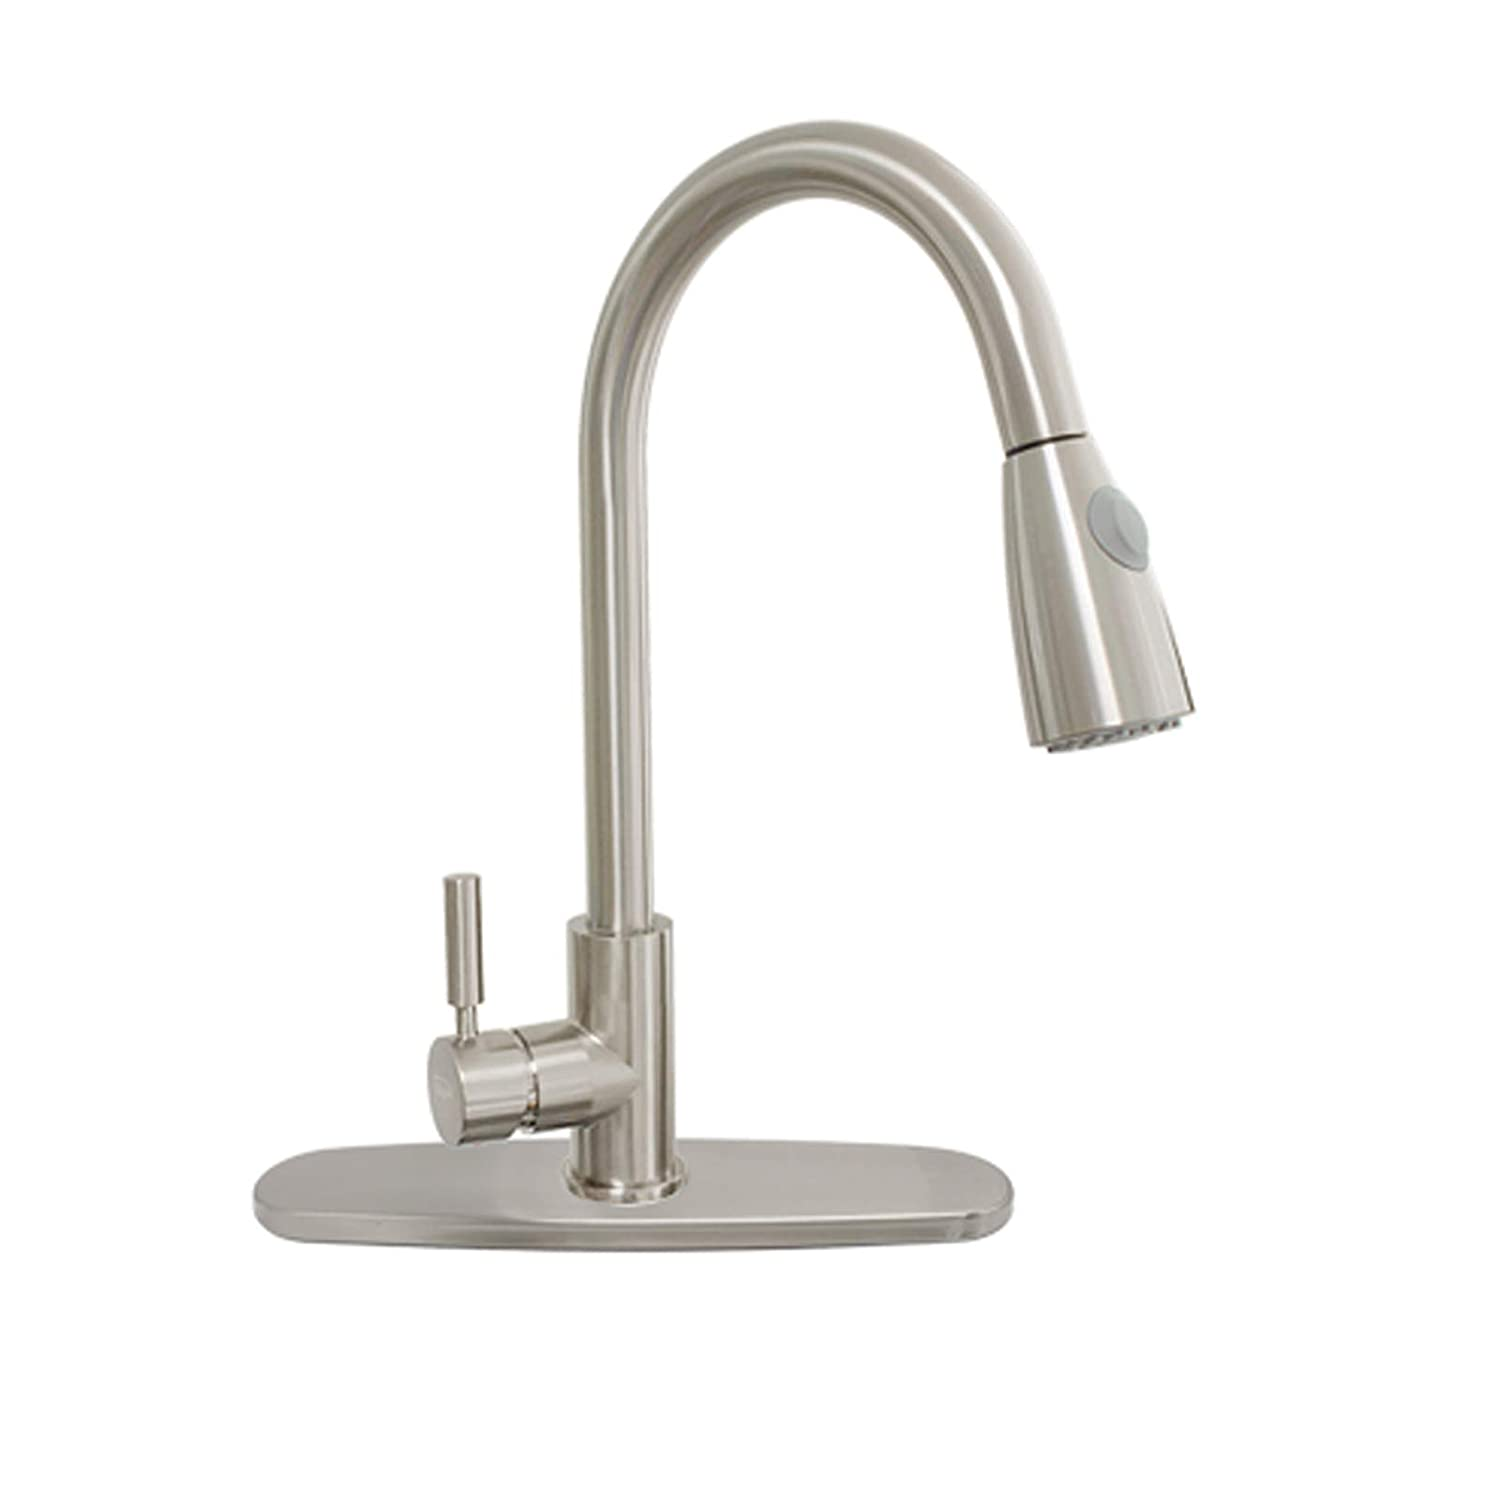 """16"""" Kitchen Faucets with Pull Down Sprayer One-Handle Ceramic Valve Free Two Stainless Steel Hoses 360 Rotation Hot Cold Mixer Stainless Steel Brushed Nickle with 10"""" Escutcheon Plate"""